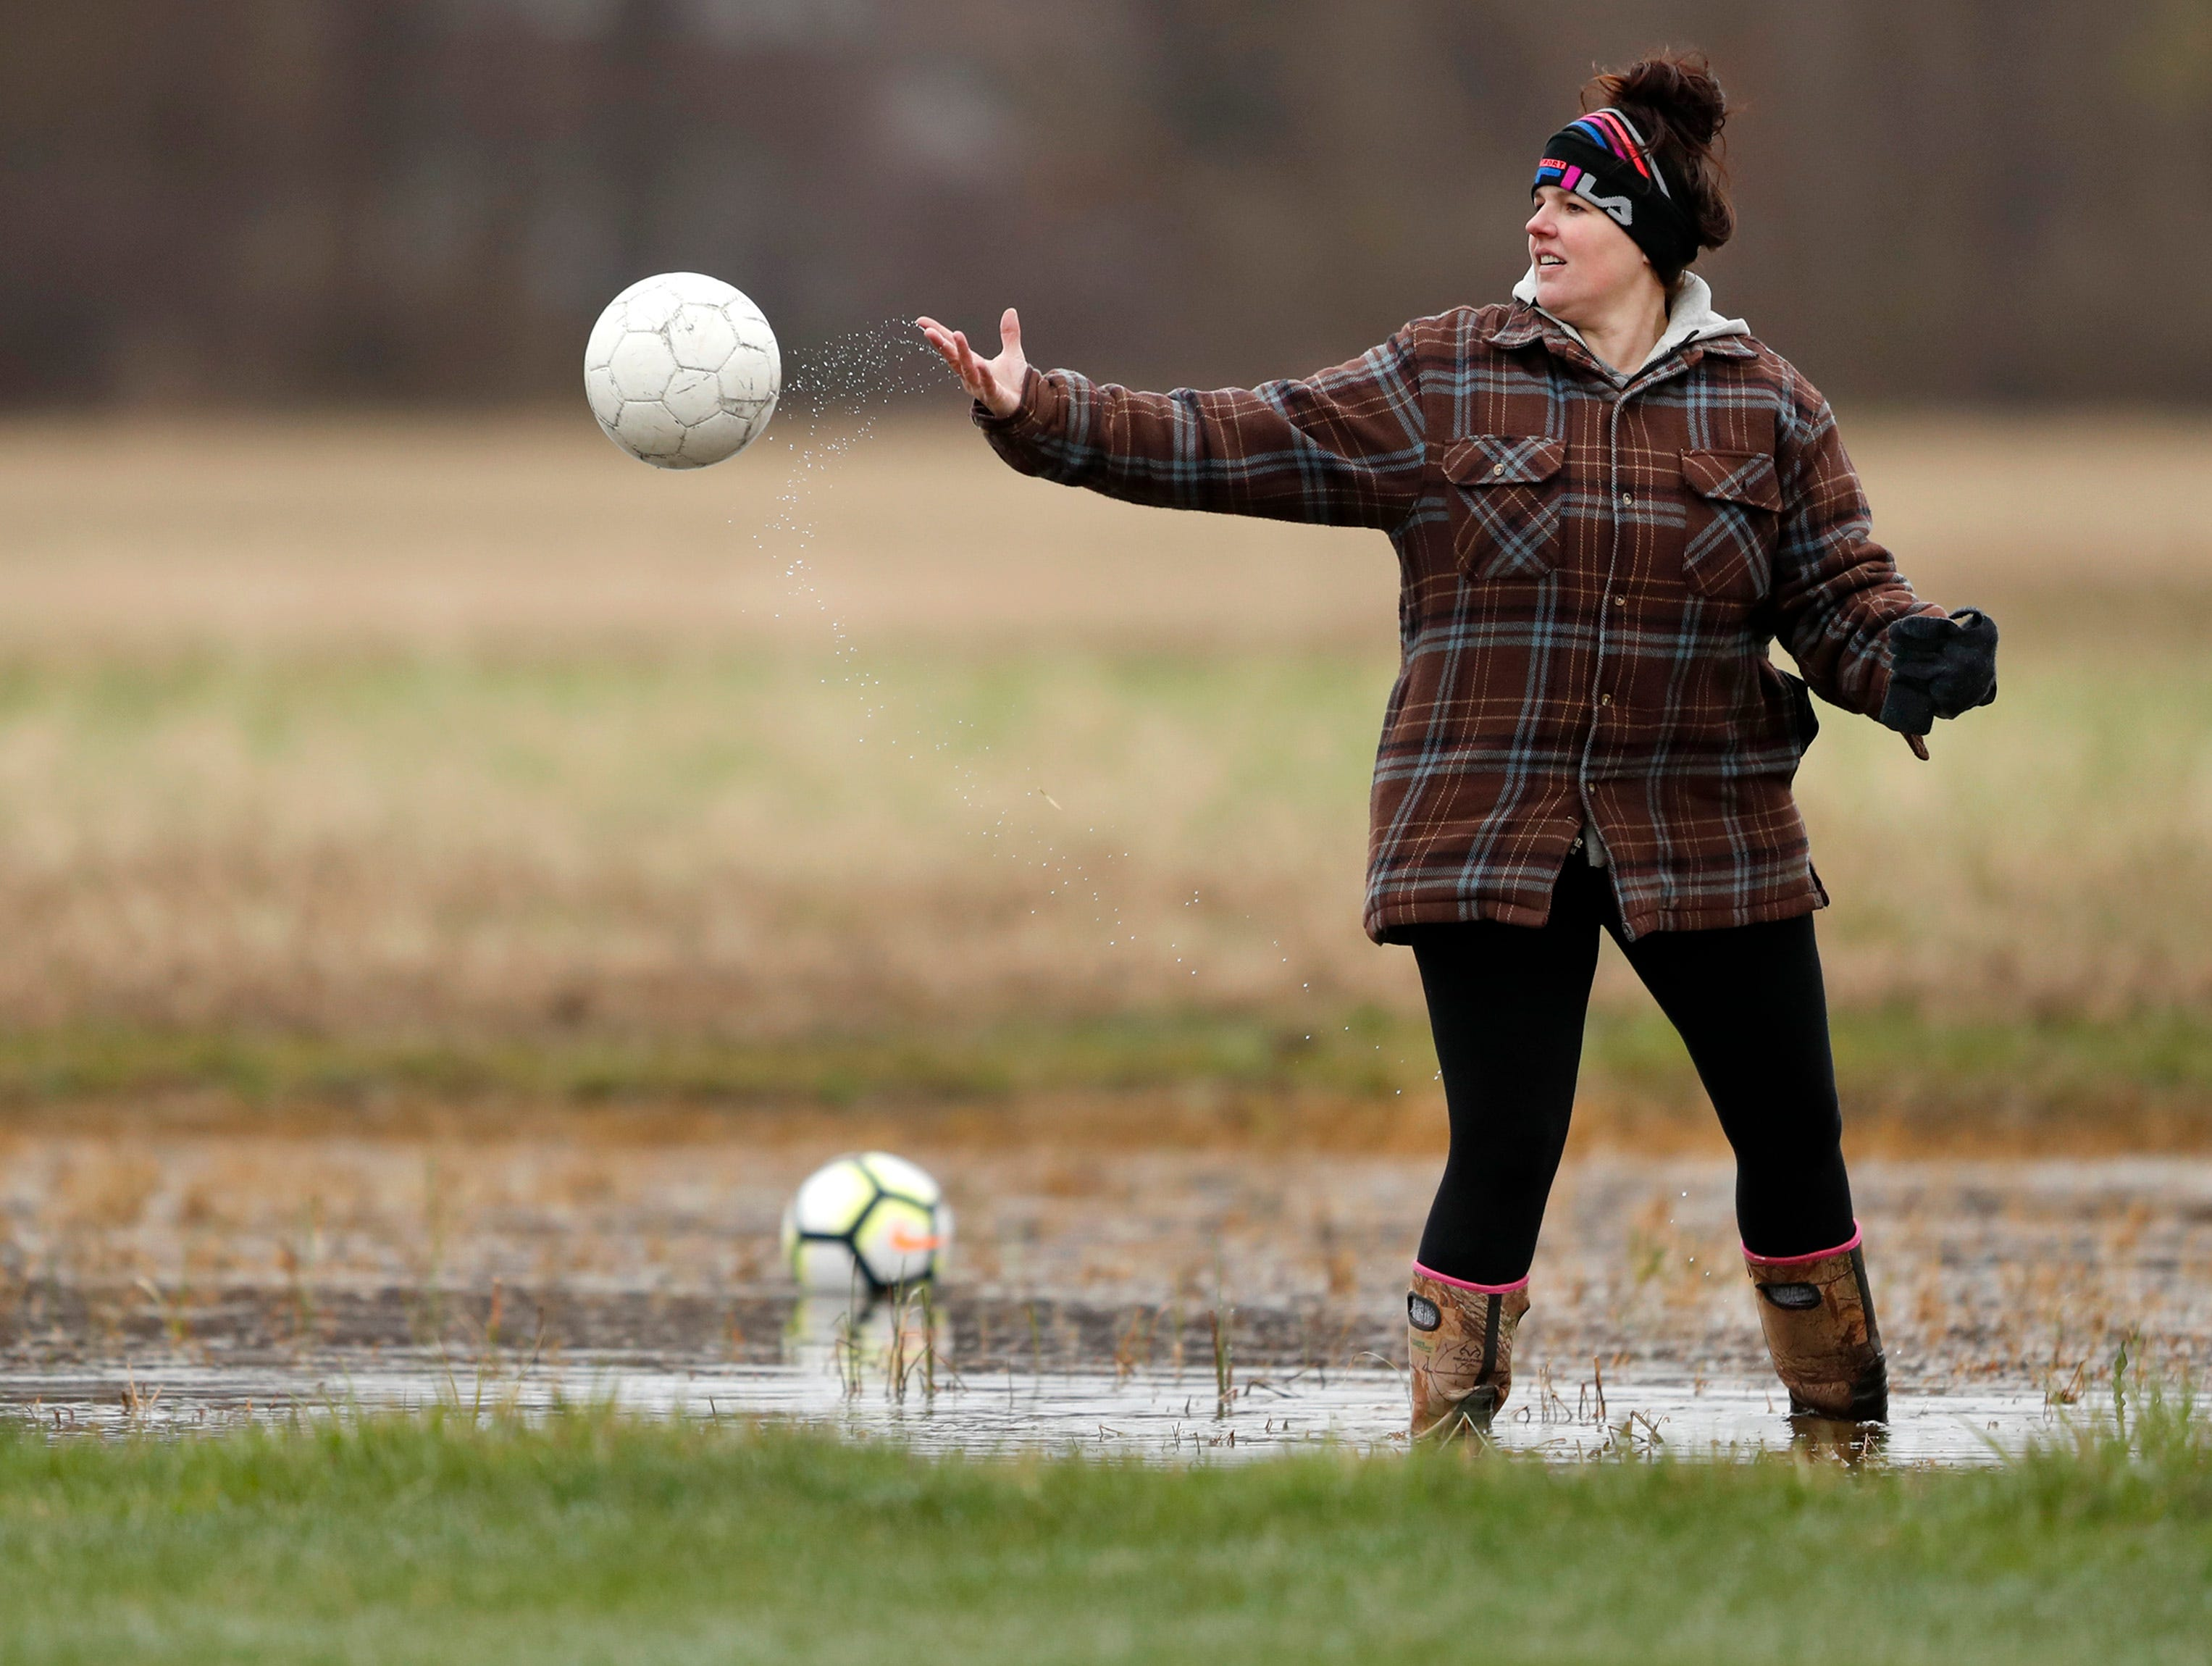 Desi Coenen, mother of Freedom midfielder Imigin Coenen, wades out into ankle deep water behind Waupaca High School's goal to collect game balls in the first half Monday, April 29, 2019, in Freedom, Wis. Danny Damiani/USA TODAY NETWORK-Wisconsin